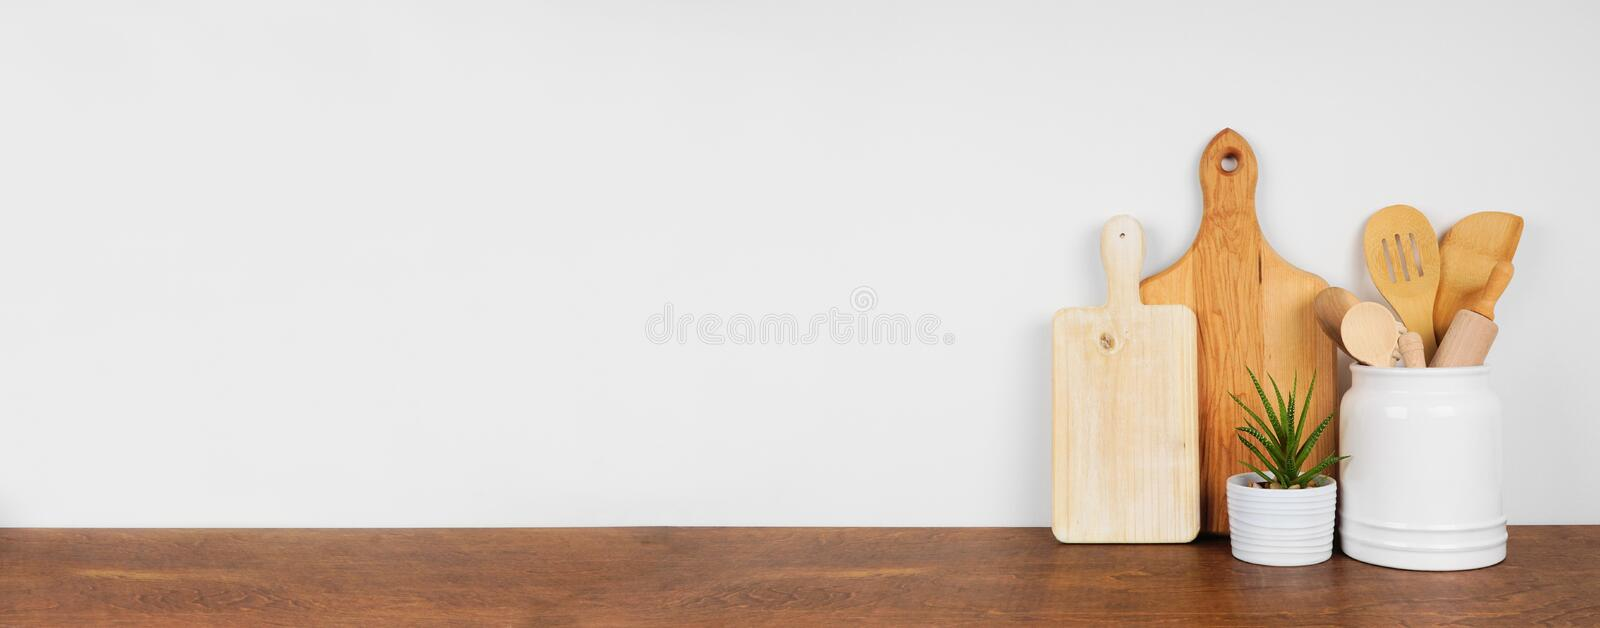 Kitchenware and utensils on a wood shelf. Banner with a white wall background and copy space. stock photos